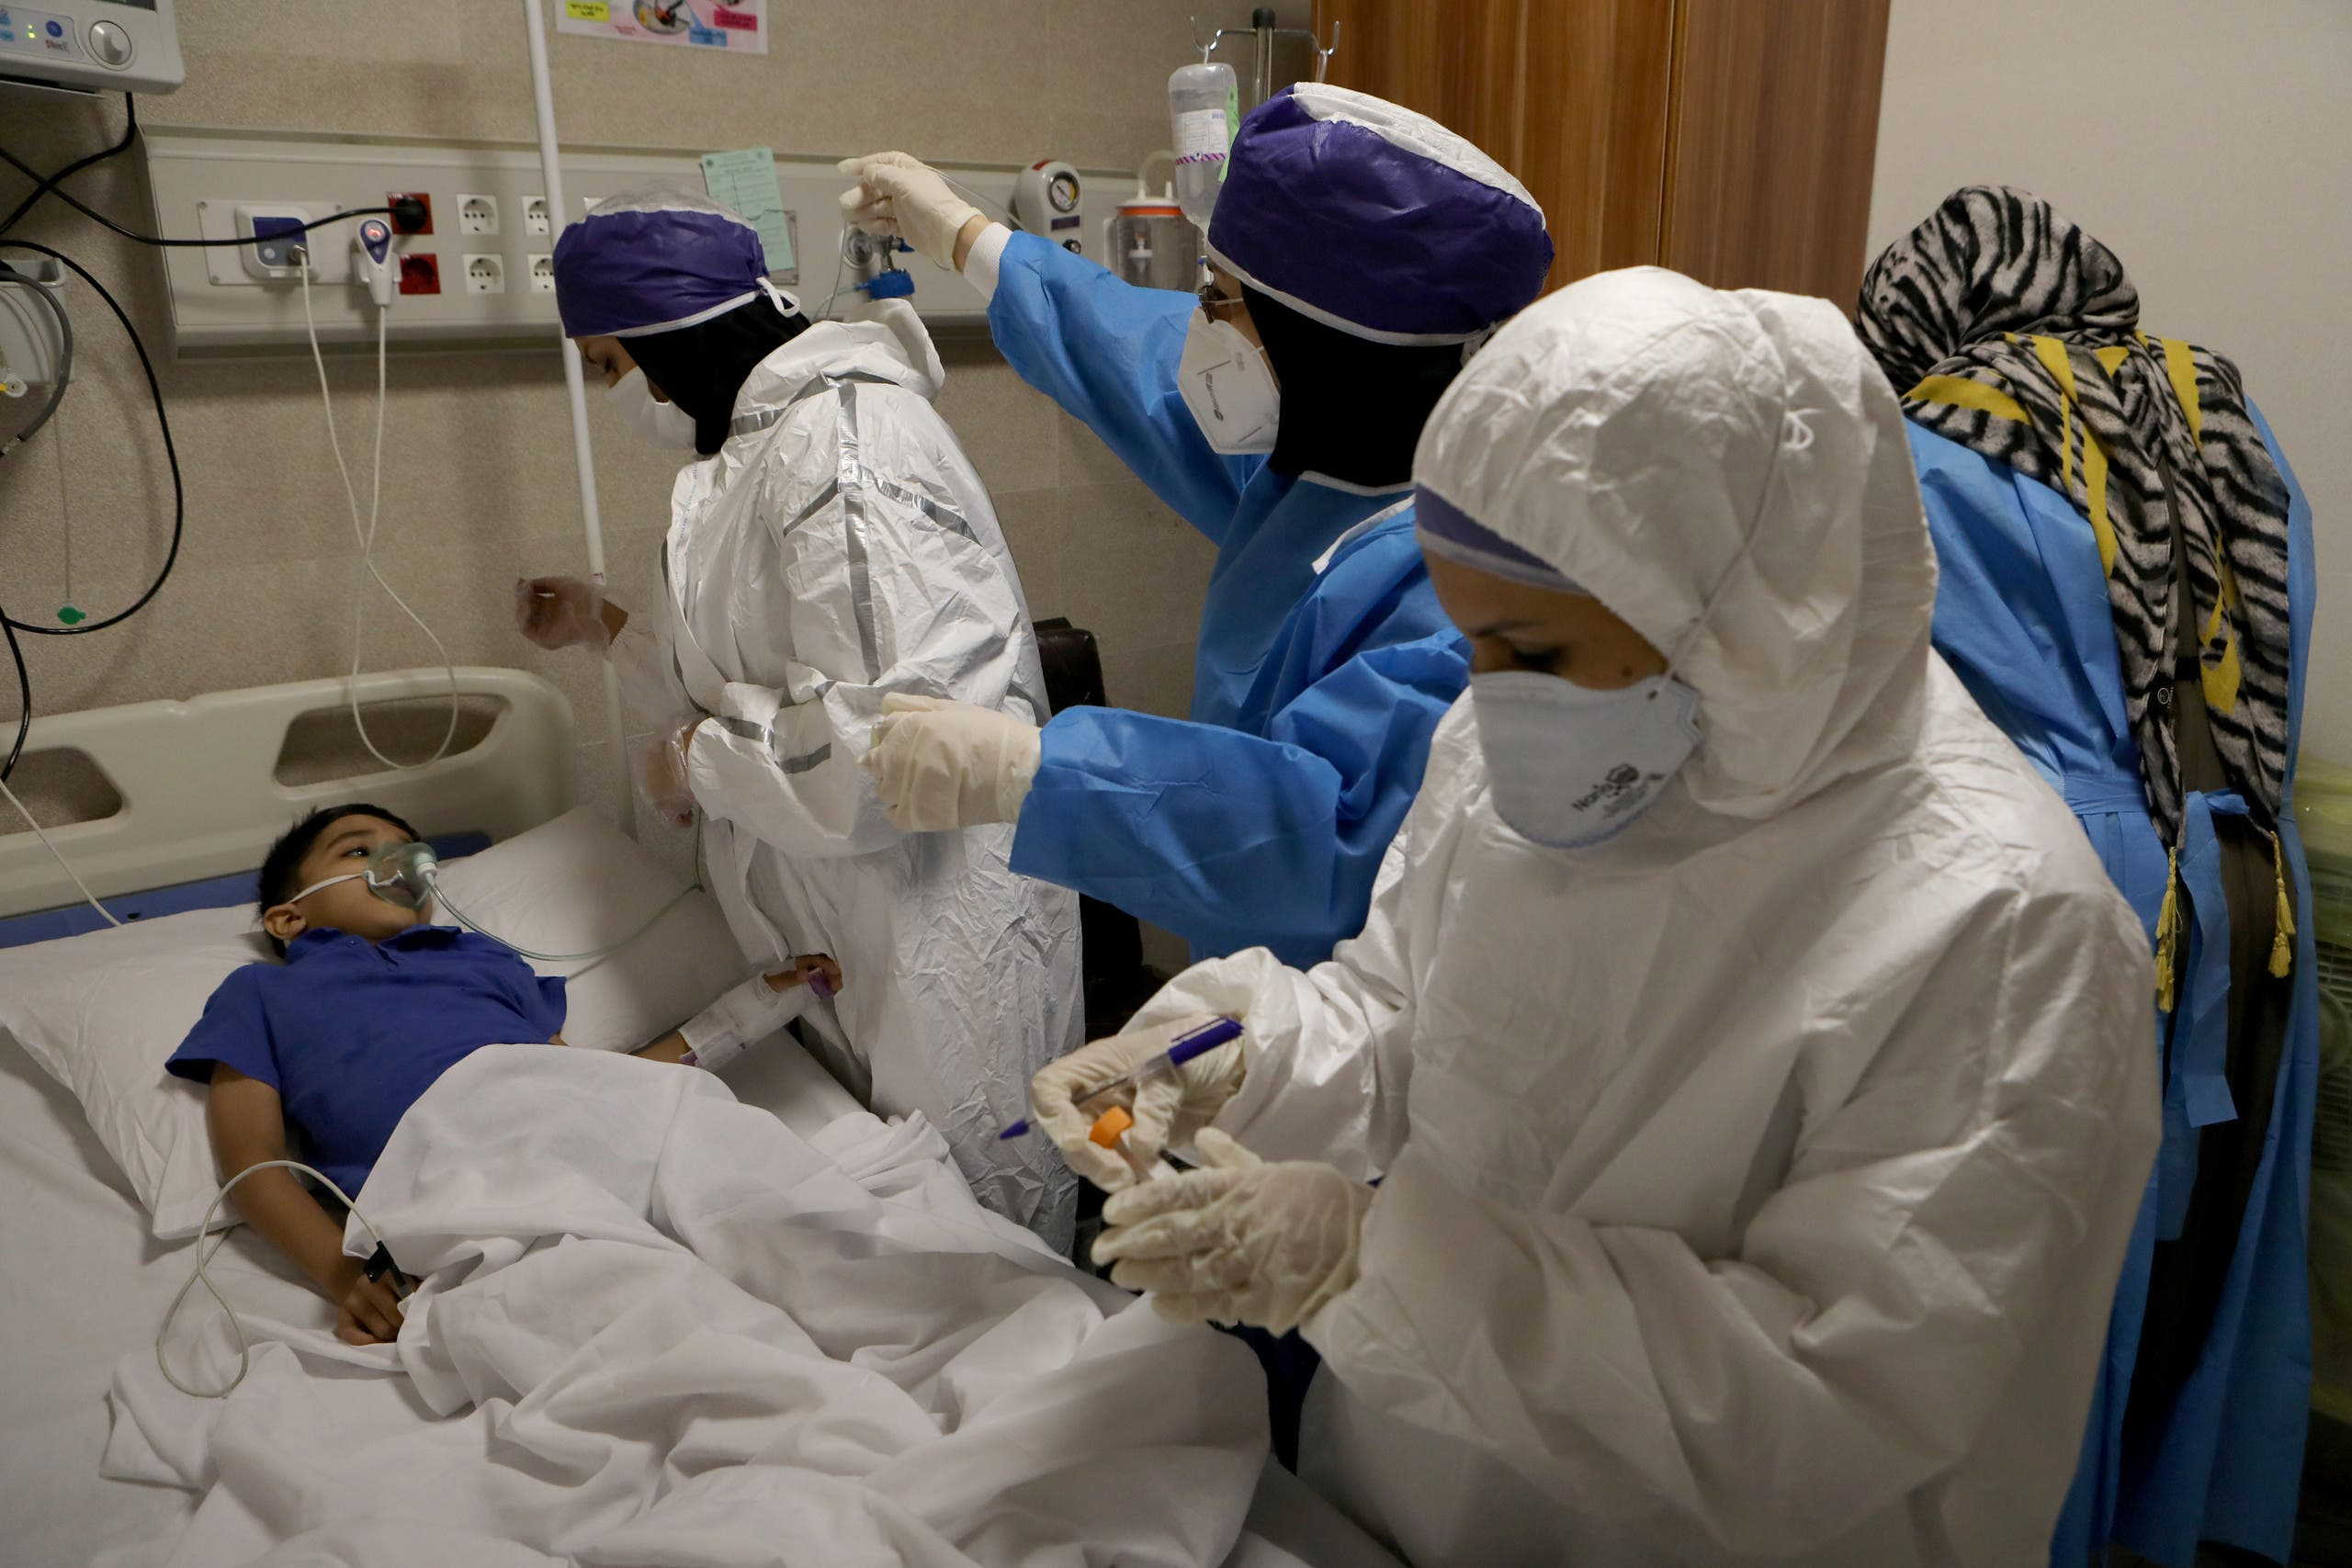 Nurses take a sample from Parham, a 7-year-old, to test for the coronavirus disease (COVID-19), at a hospital, in Tehran, Iran, July 8, 2020. (Reuters)